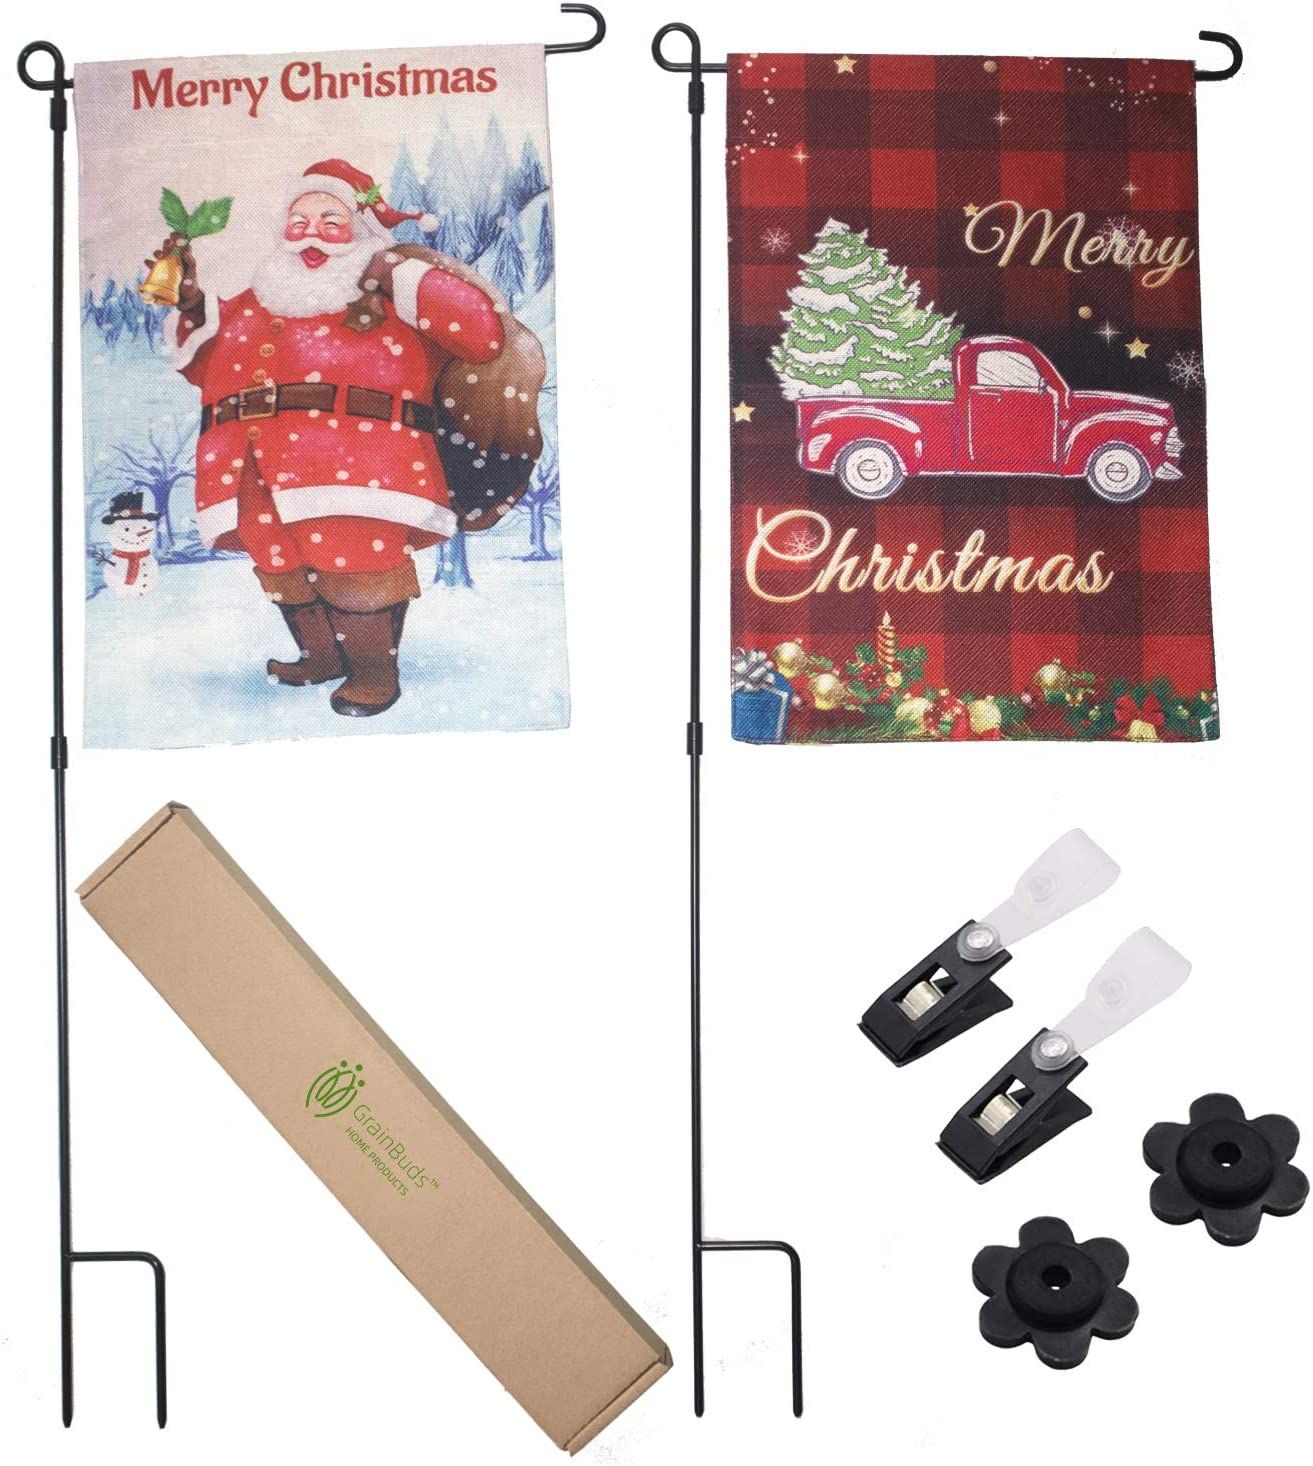 GrainBuds 2 Packs Christmas Garden Flags and Poles, Santa Claus and Red Truck Tree with Tartan Background, 12x18 Inches, Yard Decor(Flags and Poles, 2 Packs)